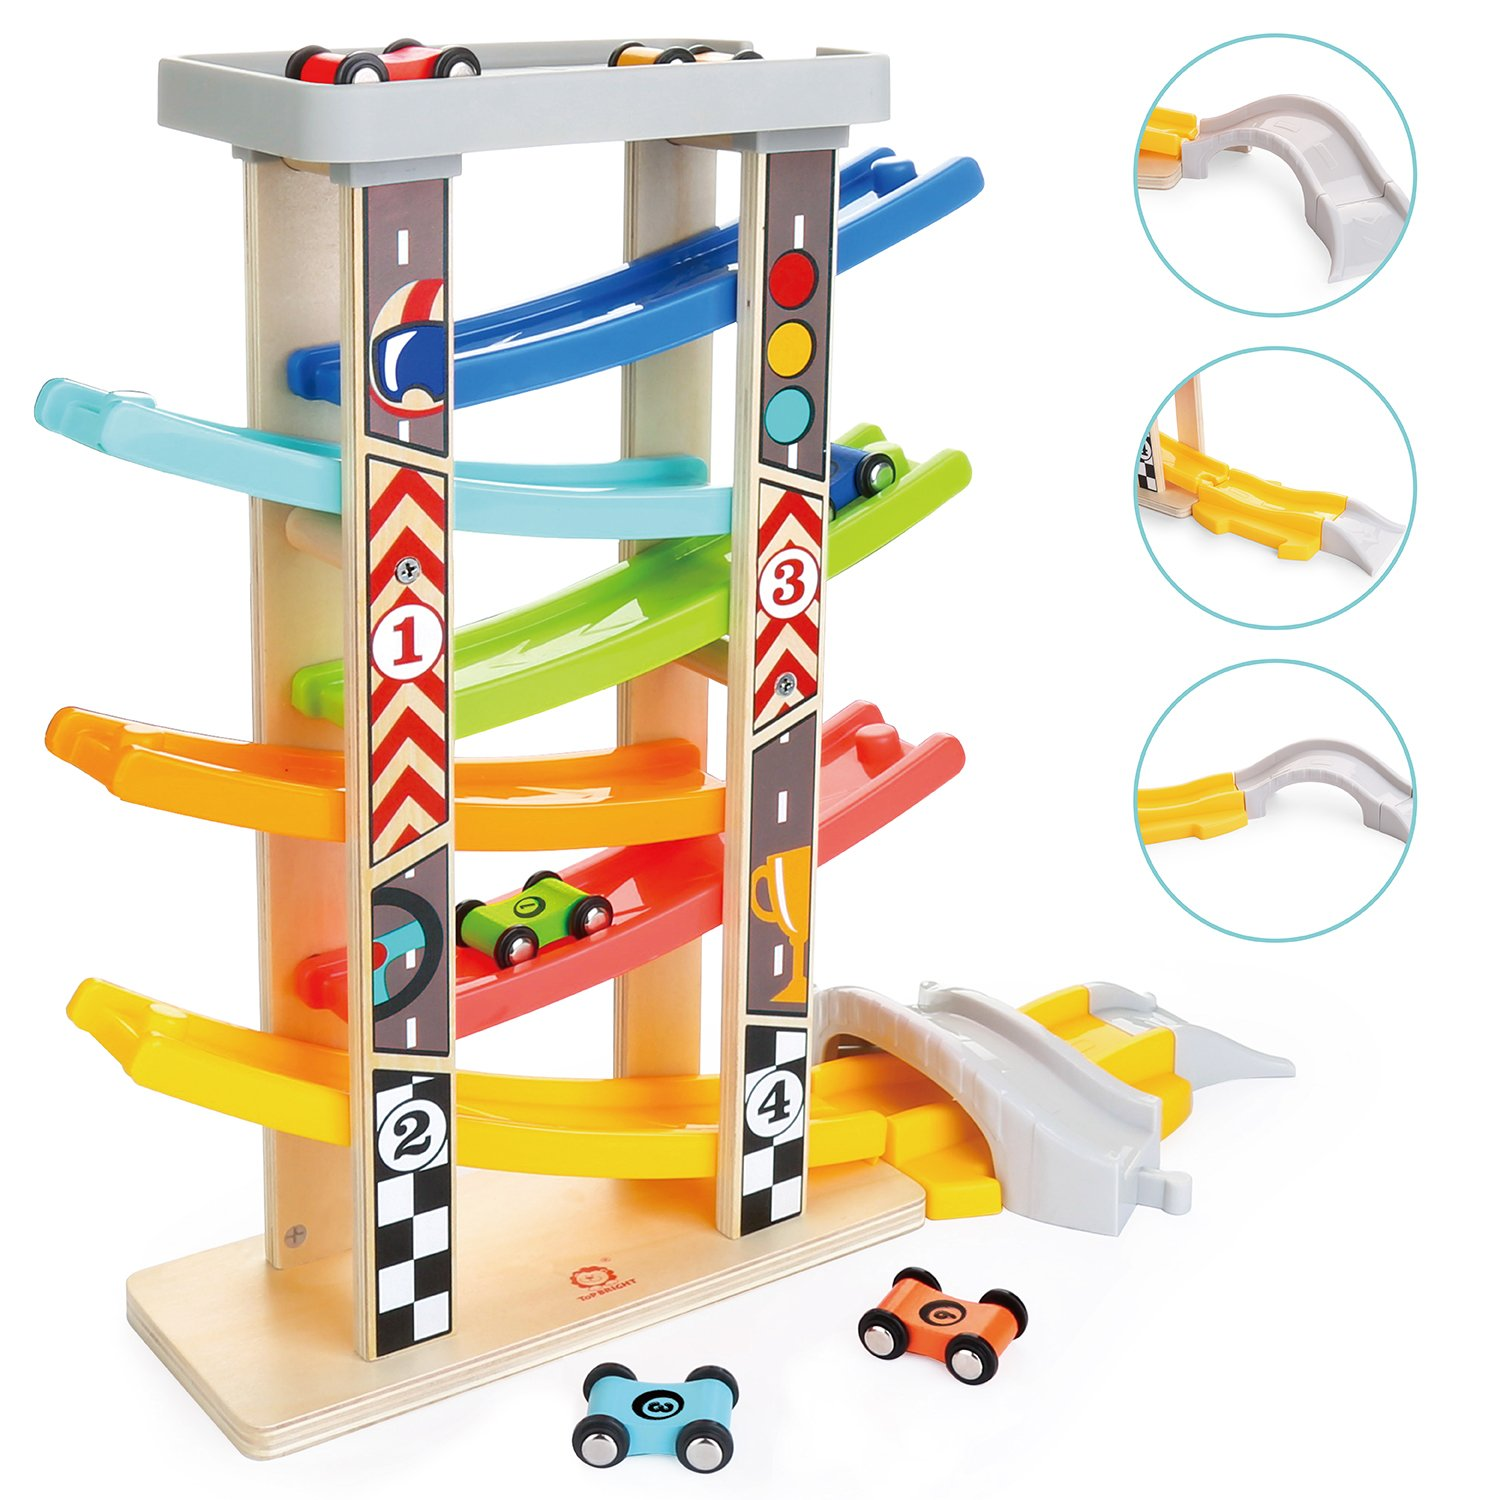 TOP BRIGHT Toddler Toys Race Track for 1 2 Year Old Boy Gifts Wooden Car Ramp Racer with 6 Mini Cars